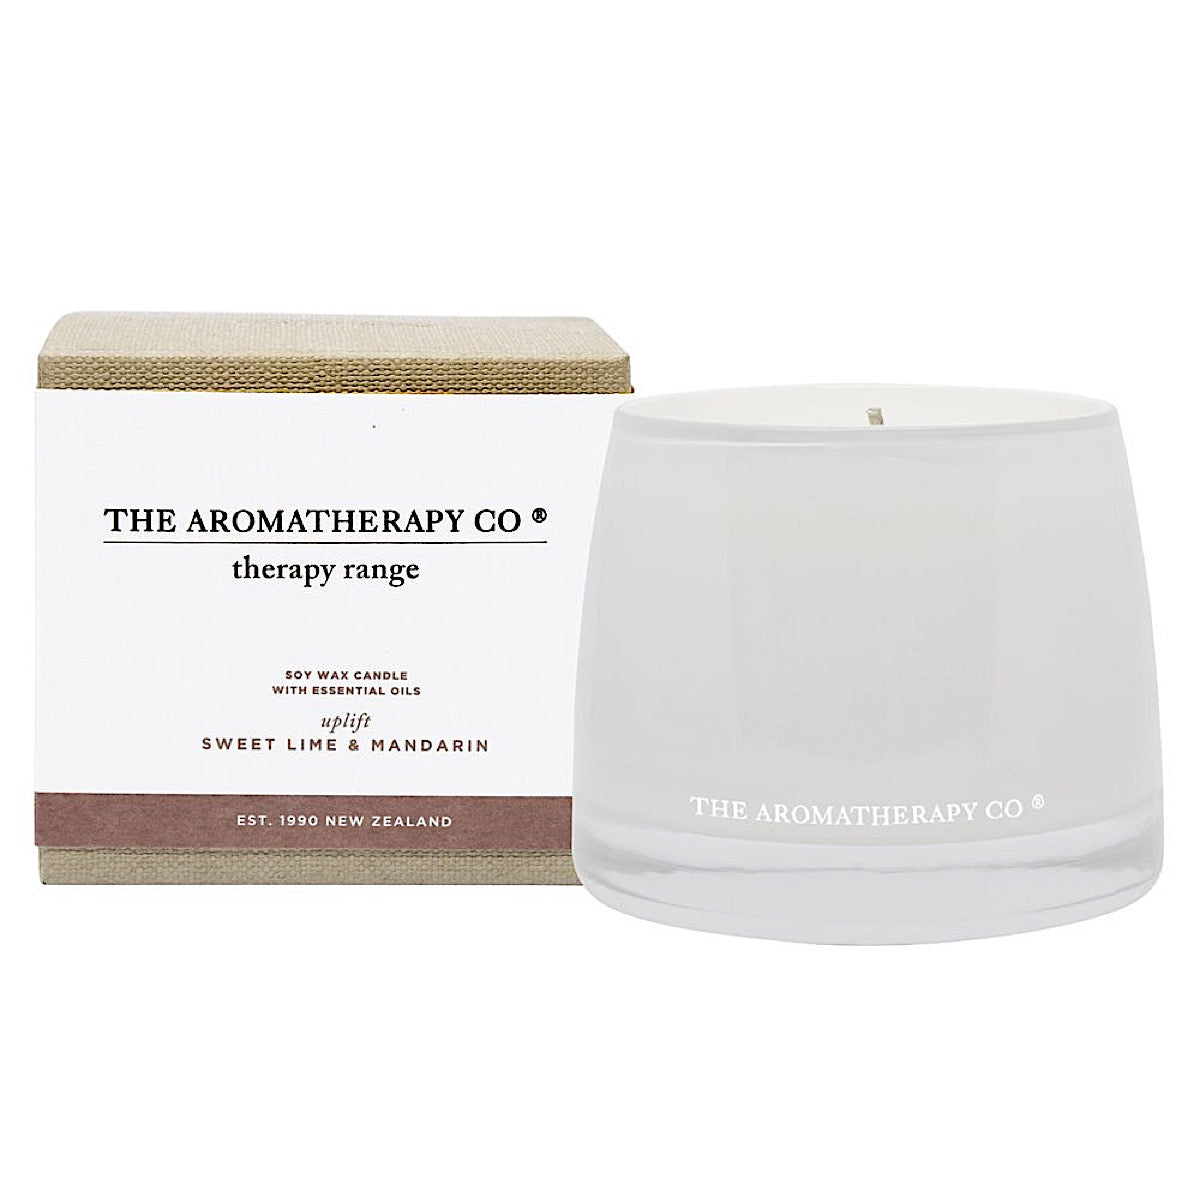 The Aromatherapy Co Therapy Range Uplift Lime & Mandarin Candle at More Than Just A Gift